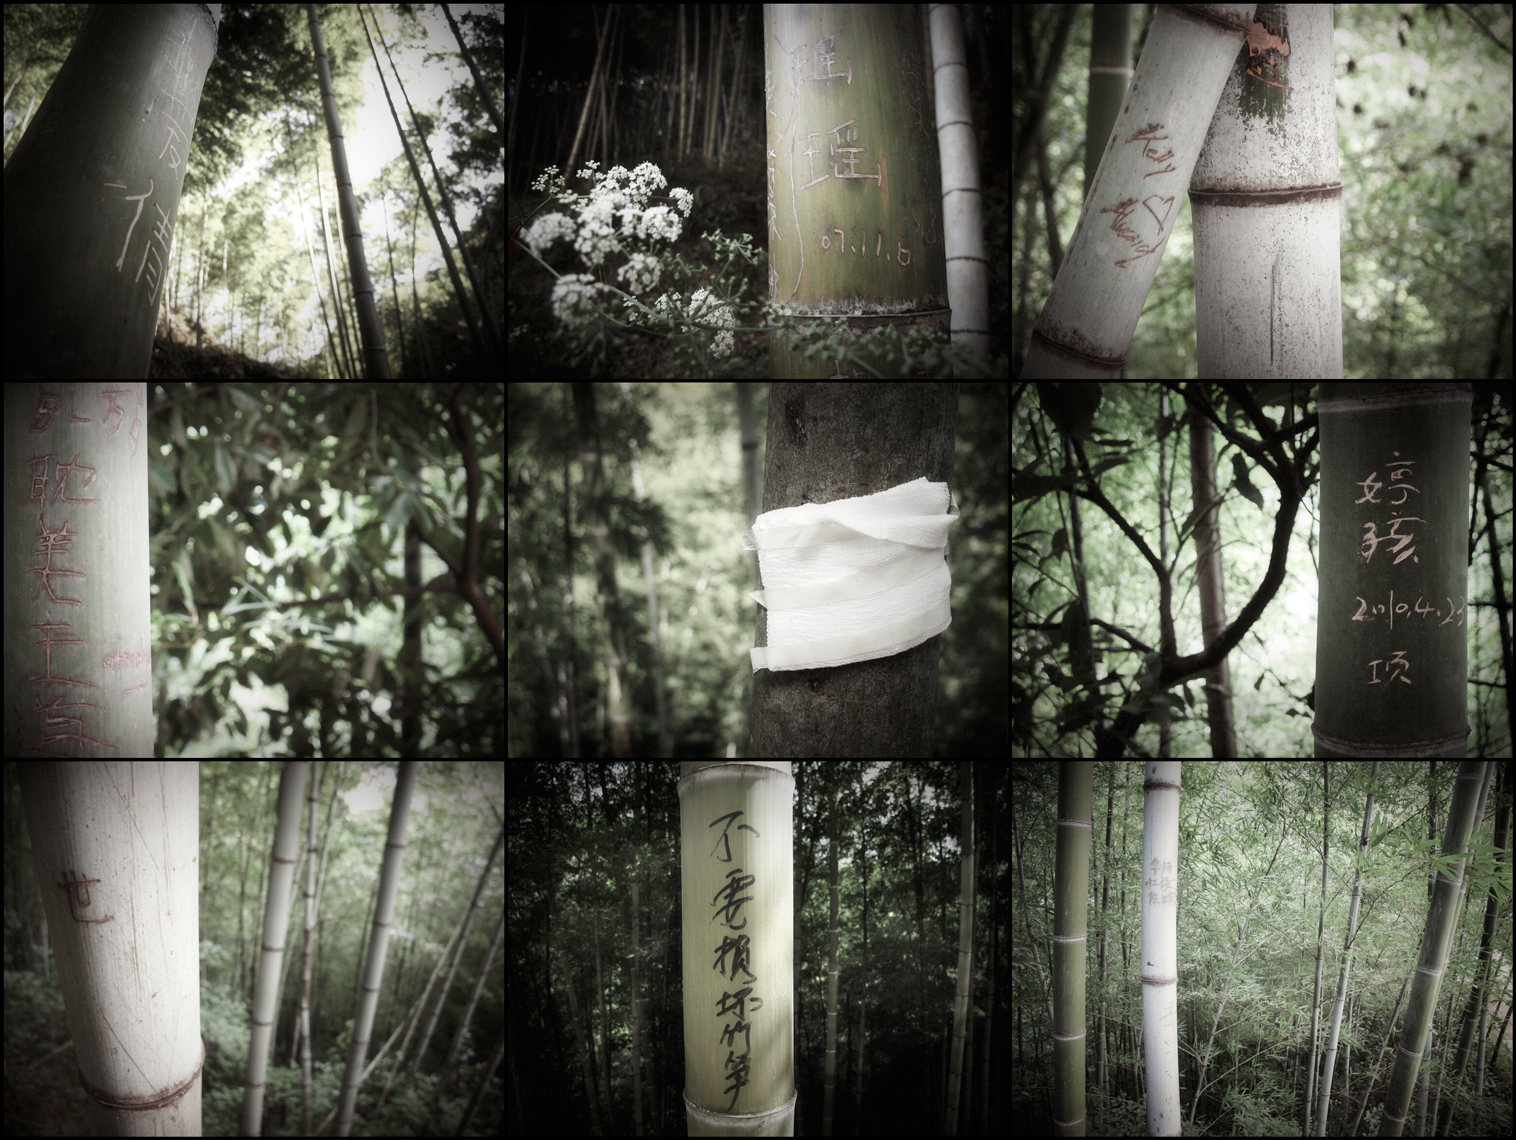 Jon Wyatt Photography - The Lost Library II - Graffiti on bamboo in bamboo forest in China